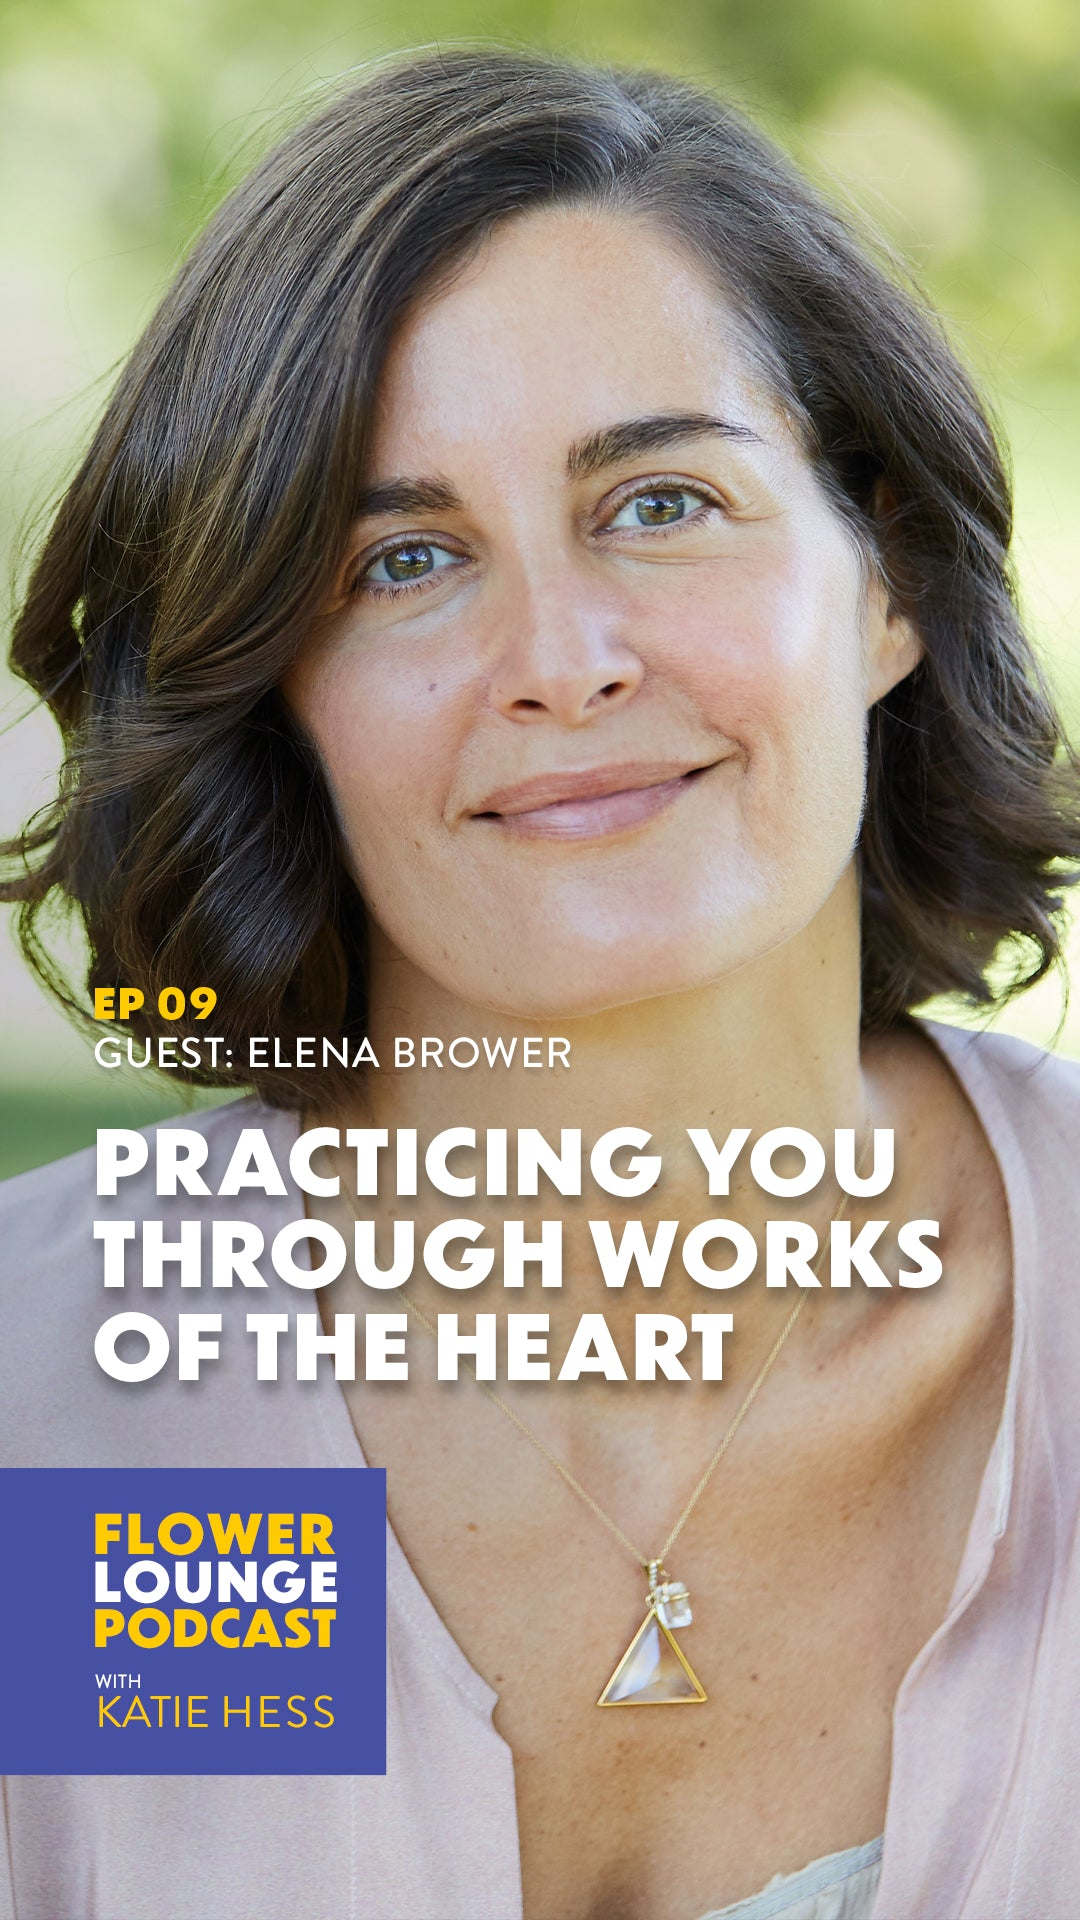 Practicing You Through the Works of the Heart with Elena Brower